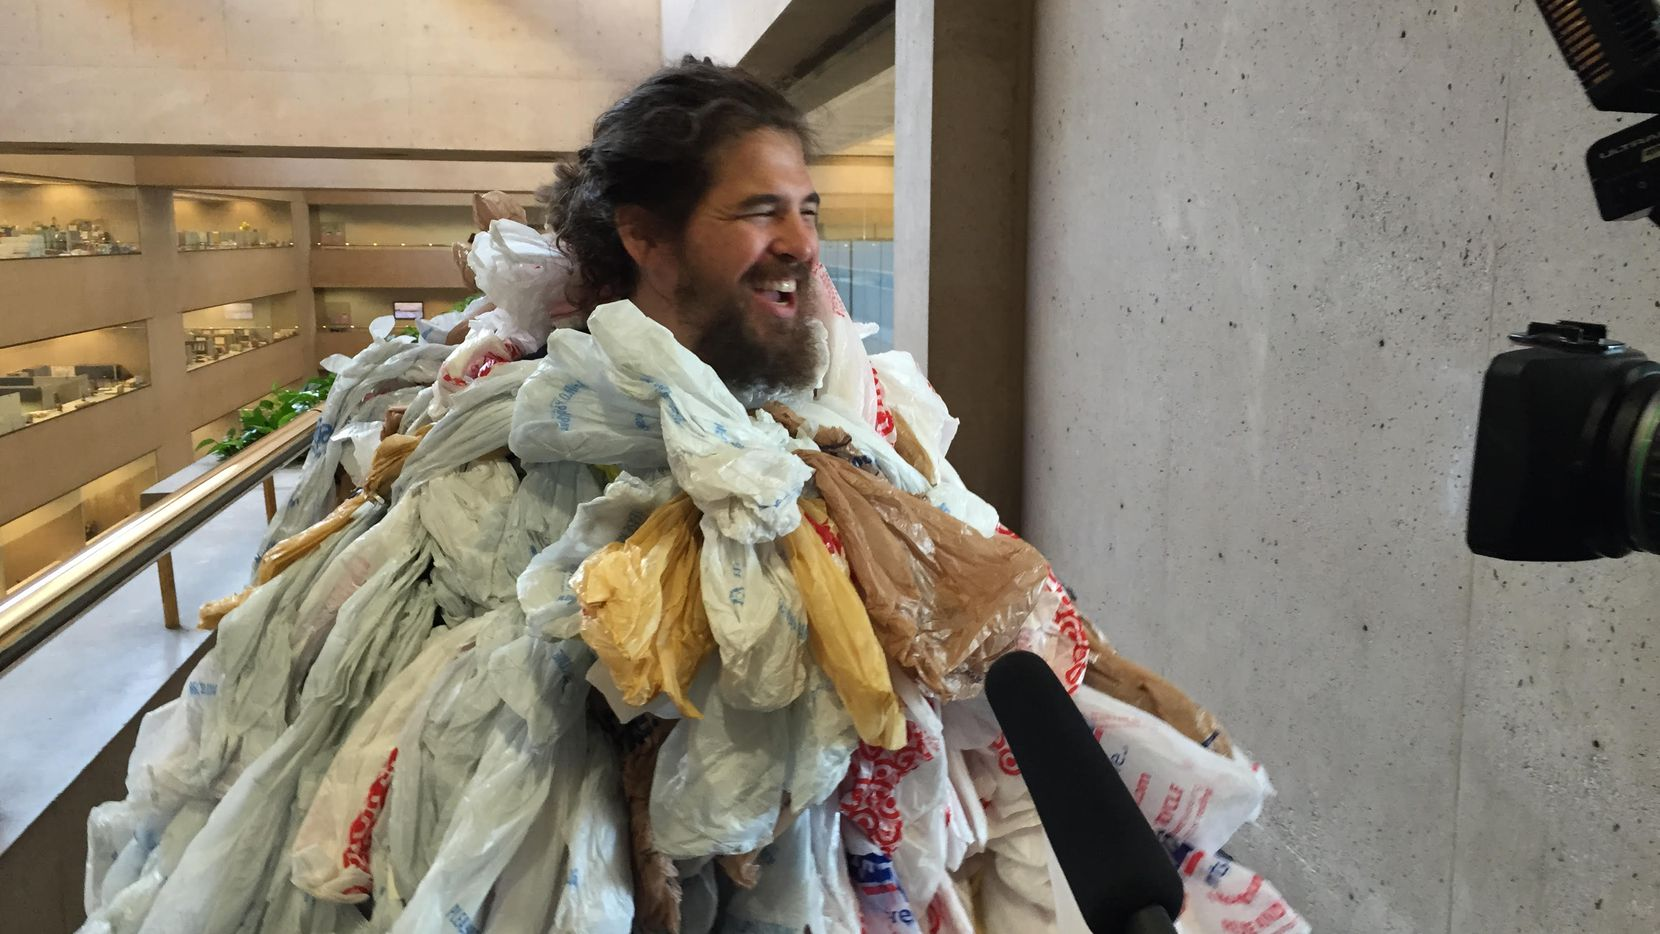 The Plastic Bag Monster could not get the council to vote for a bag ban (Kye R. Lee/Staff photographer)